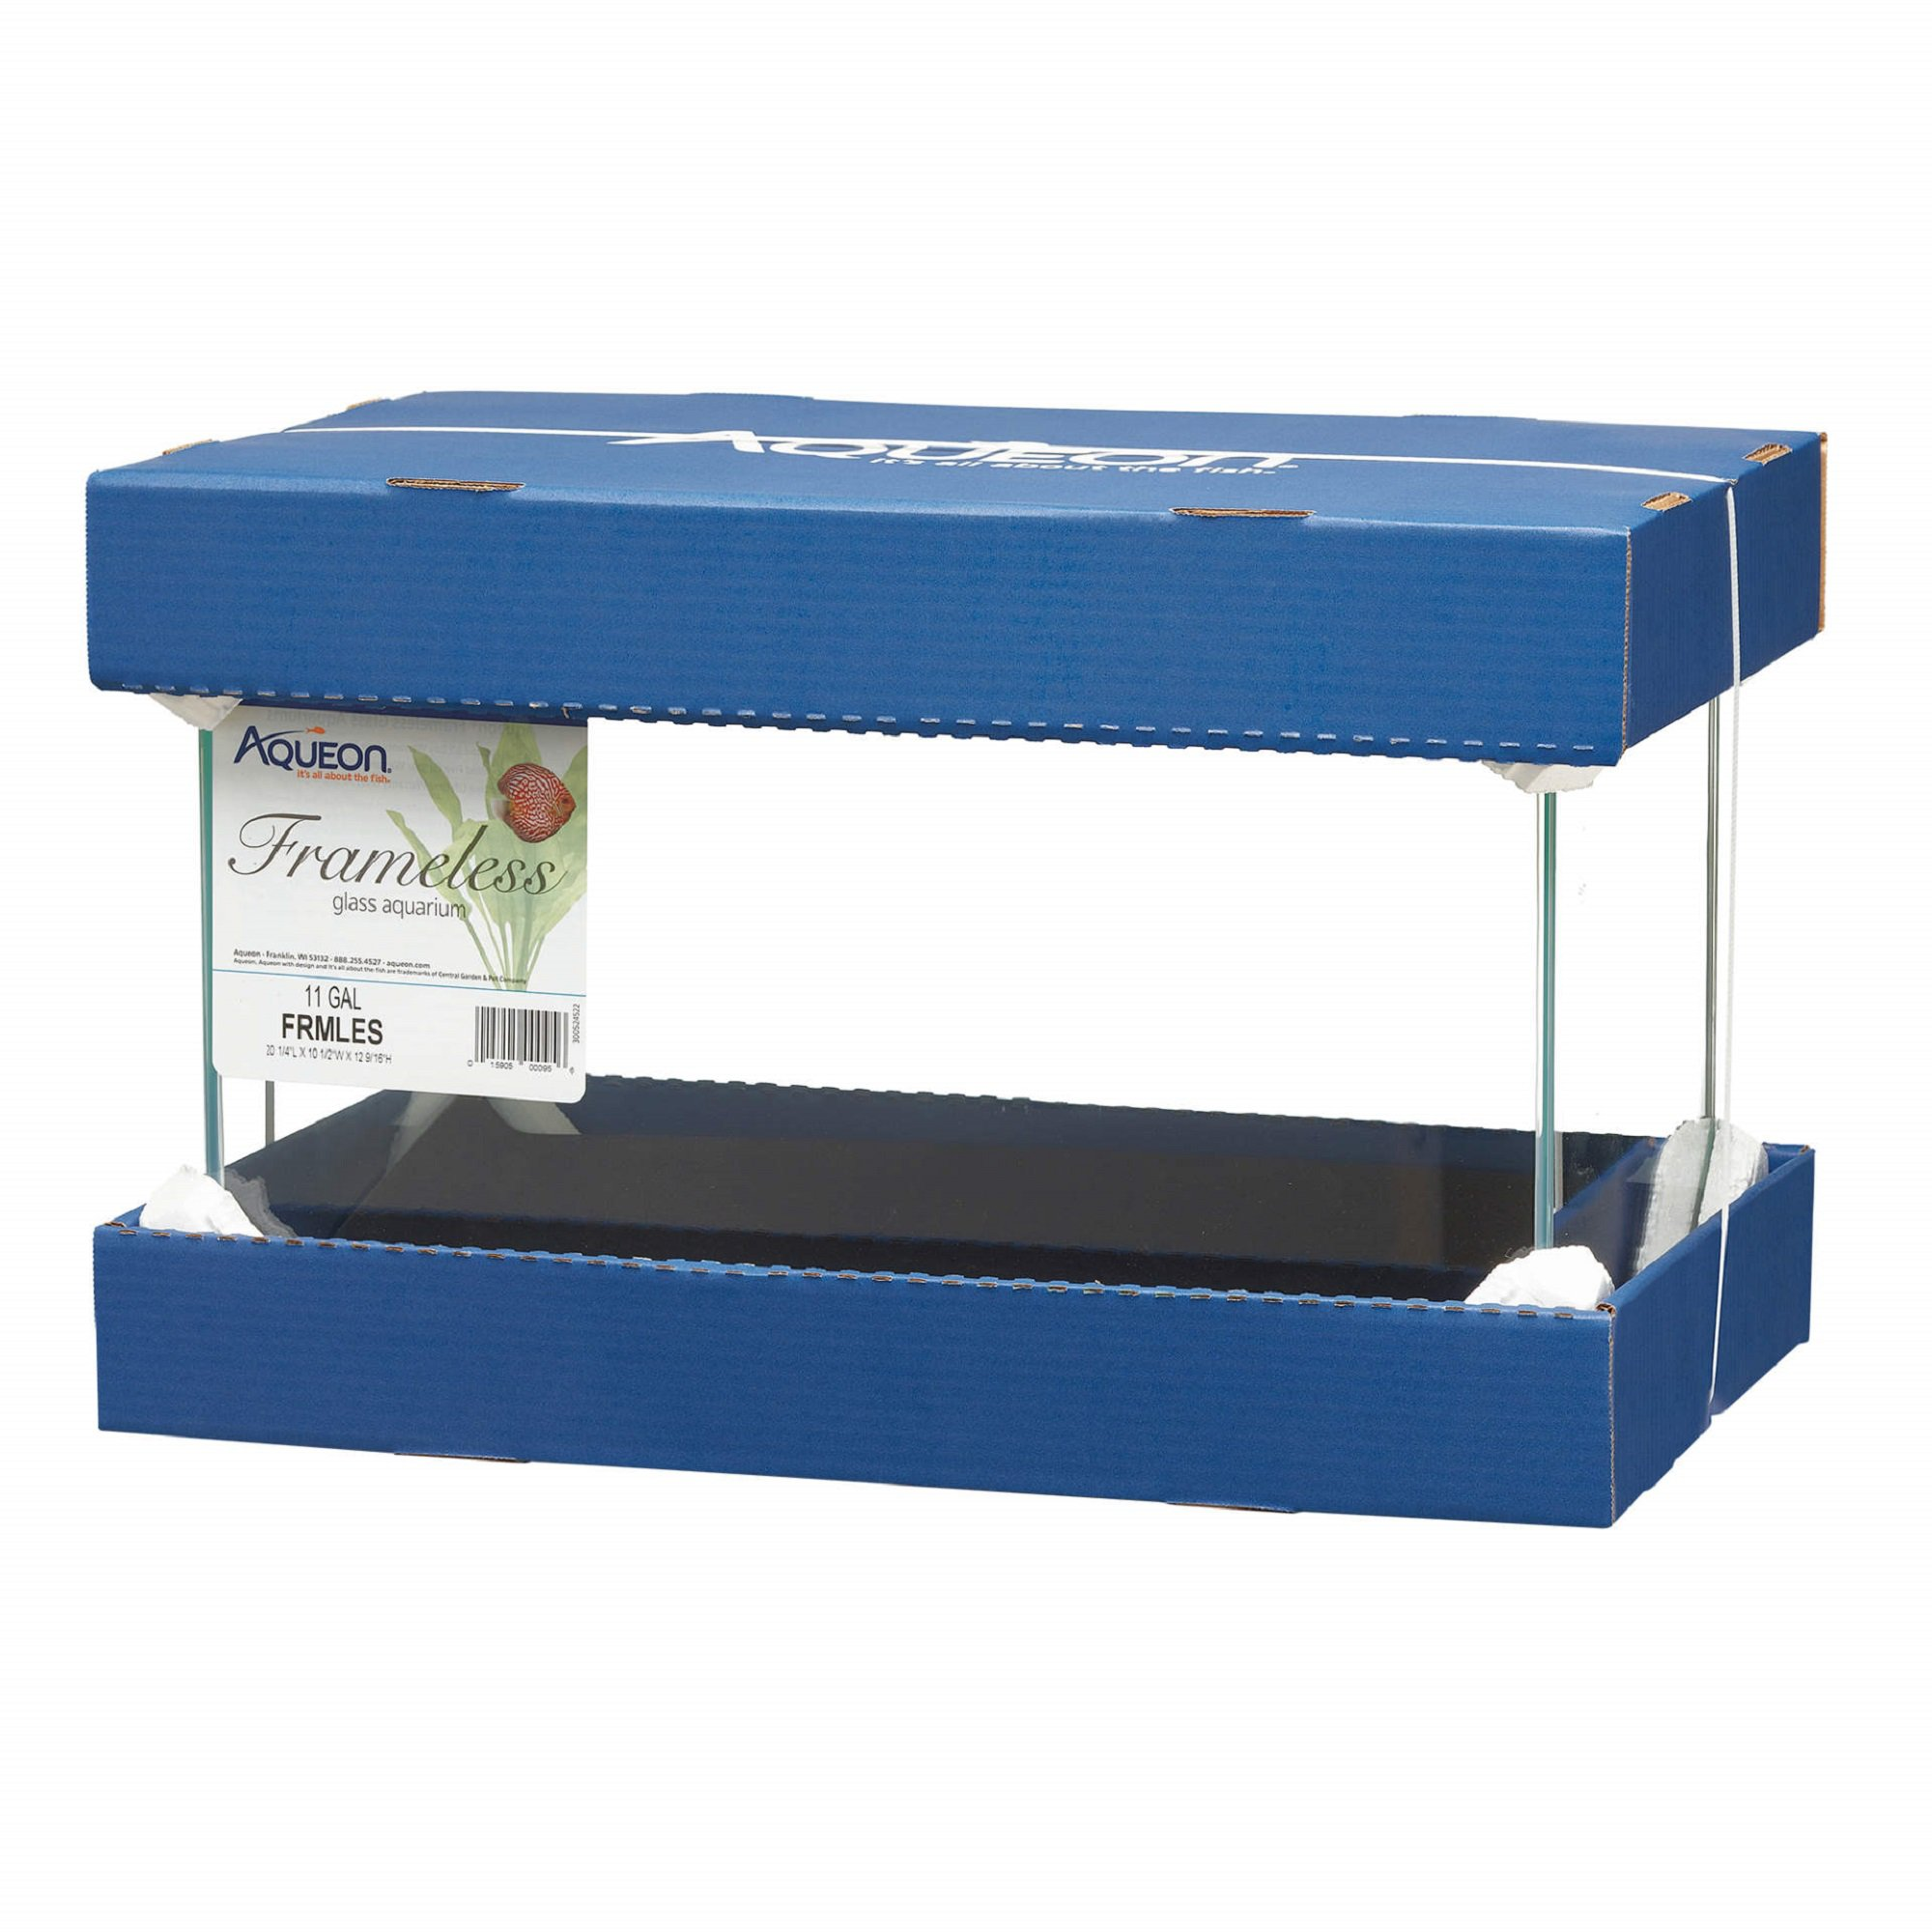 Aqueon 11 Gallon Frameless Aquarium | Petco